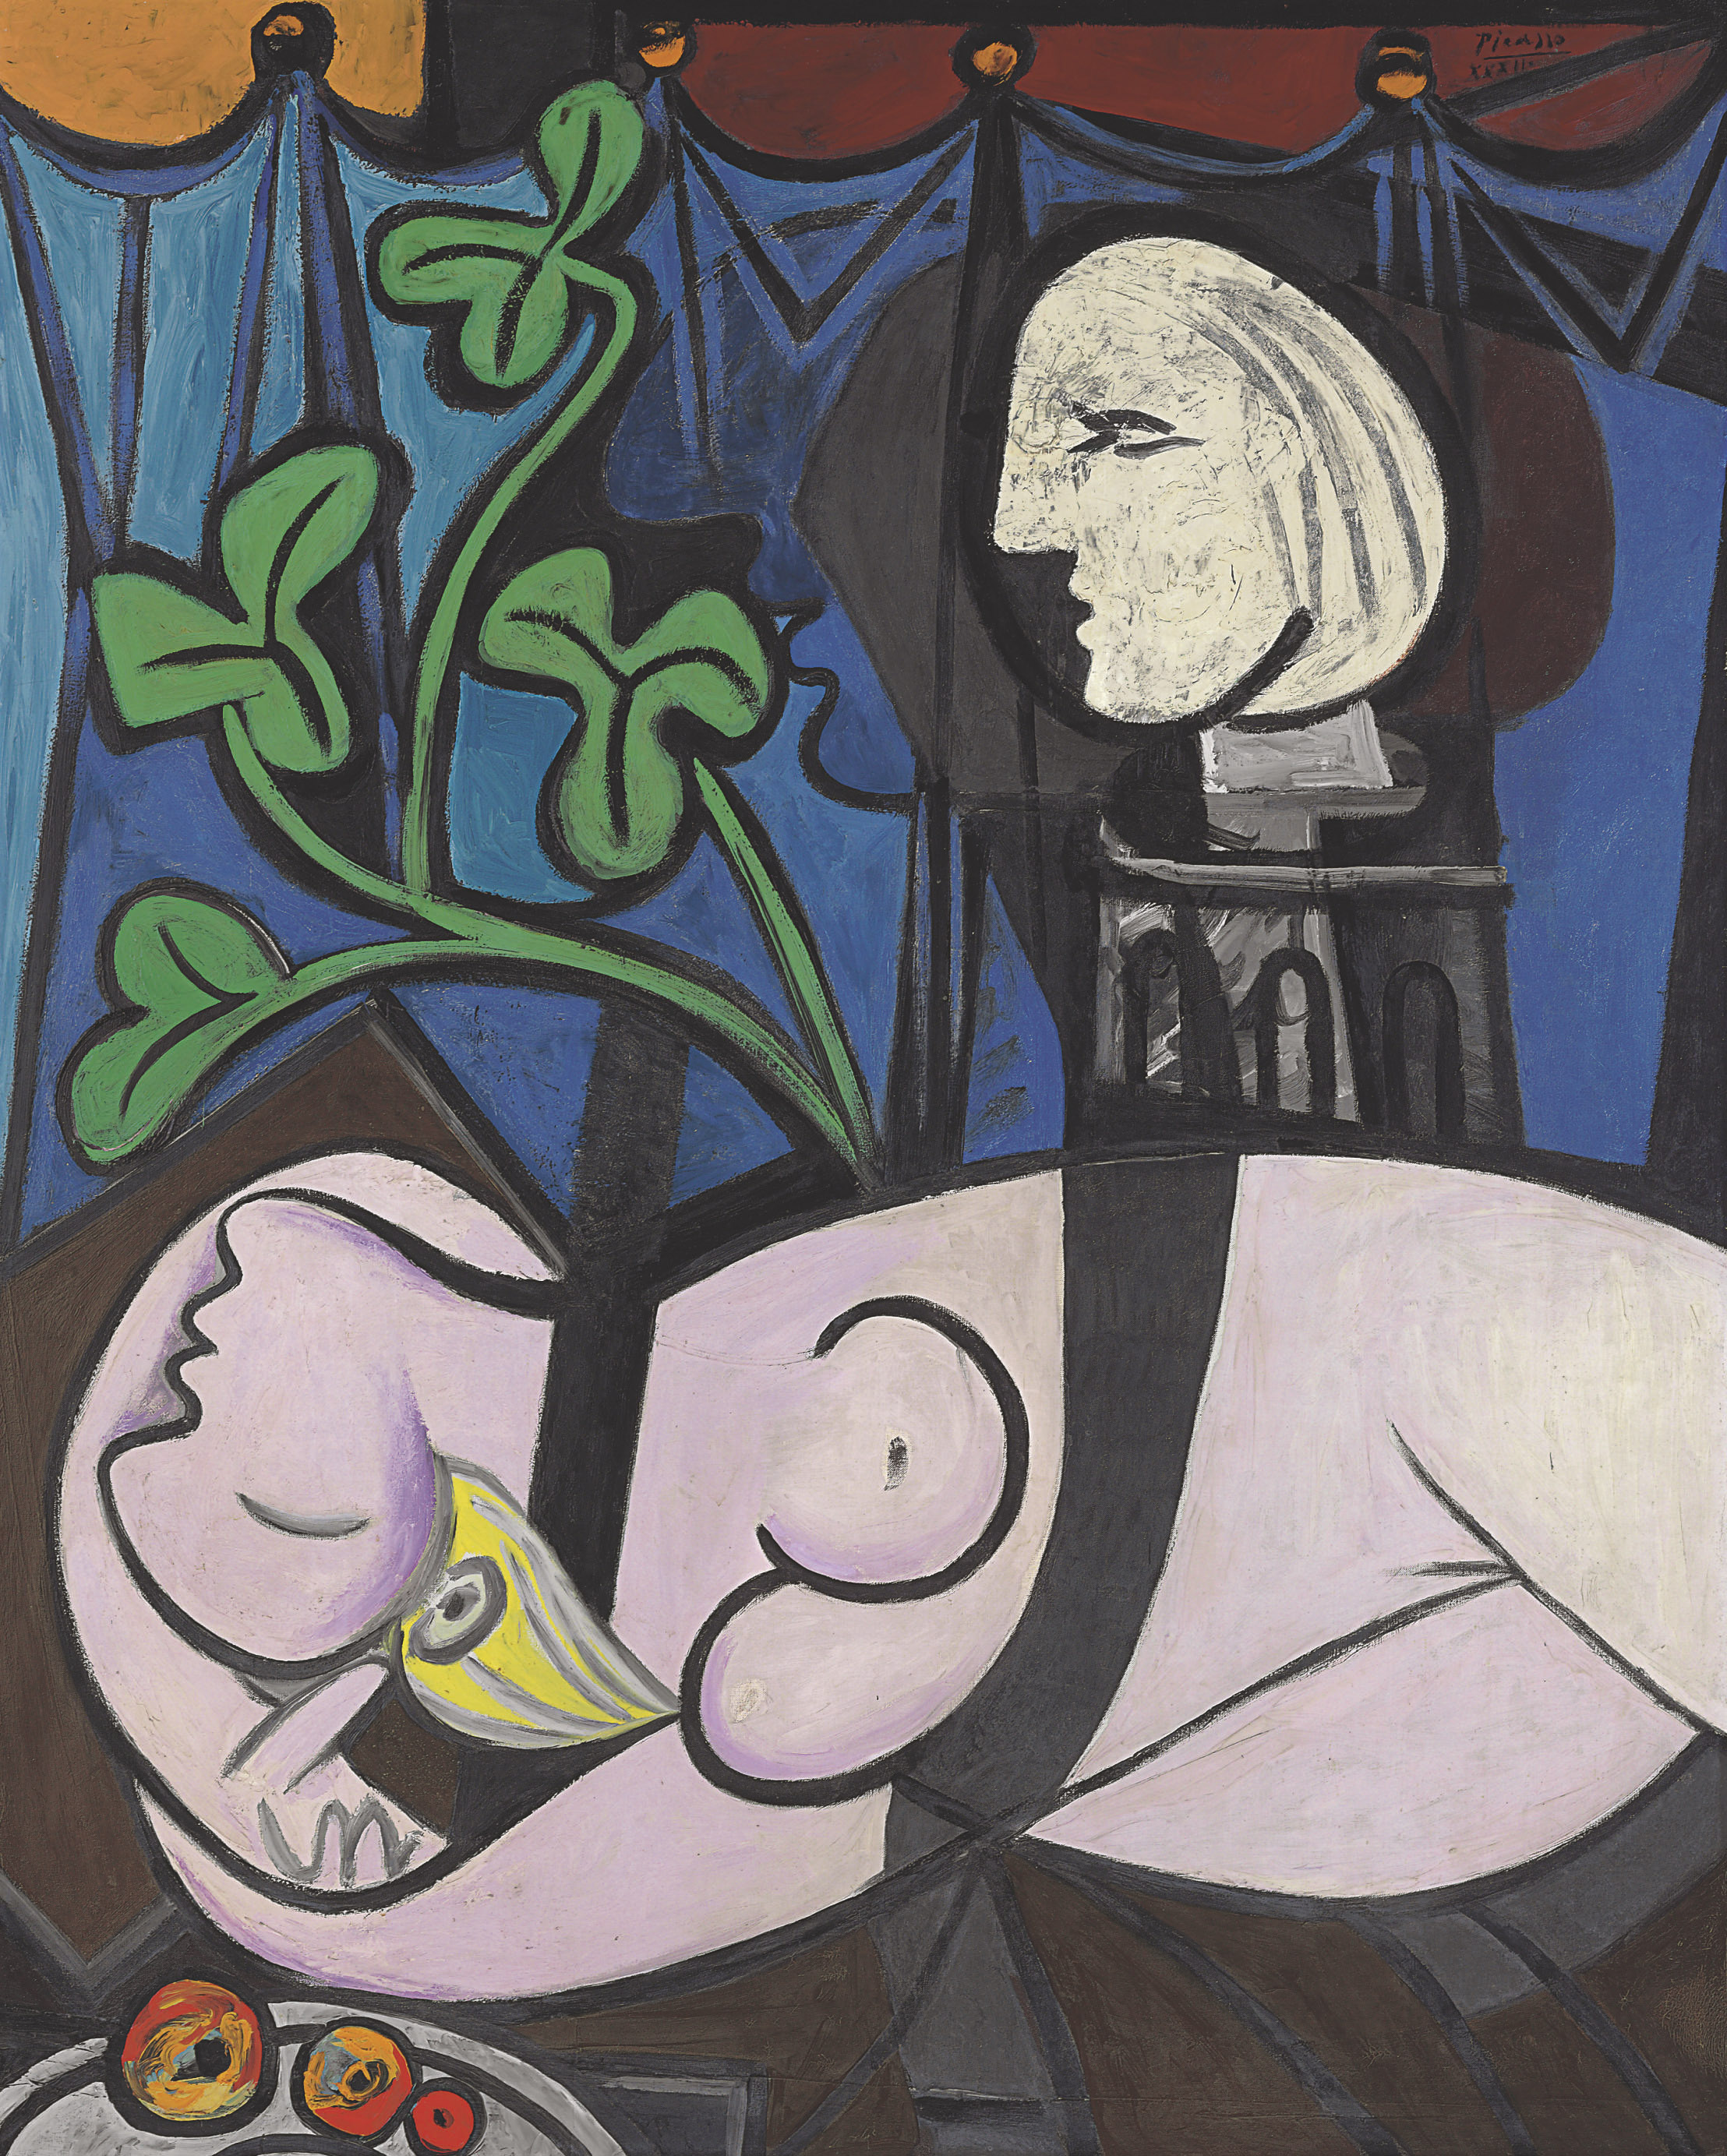 https://upload.wikimedia.org/wikipedia/ru/2/2b/Nude_Green_Leaves_and_Bust_by_Picasso.jpg